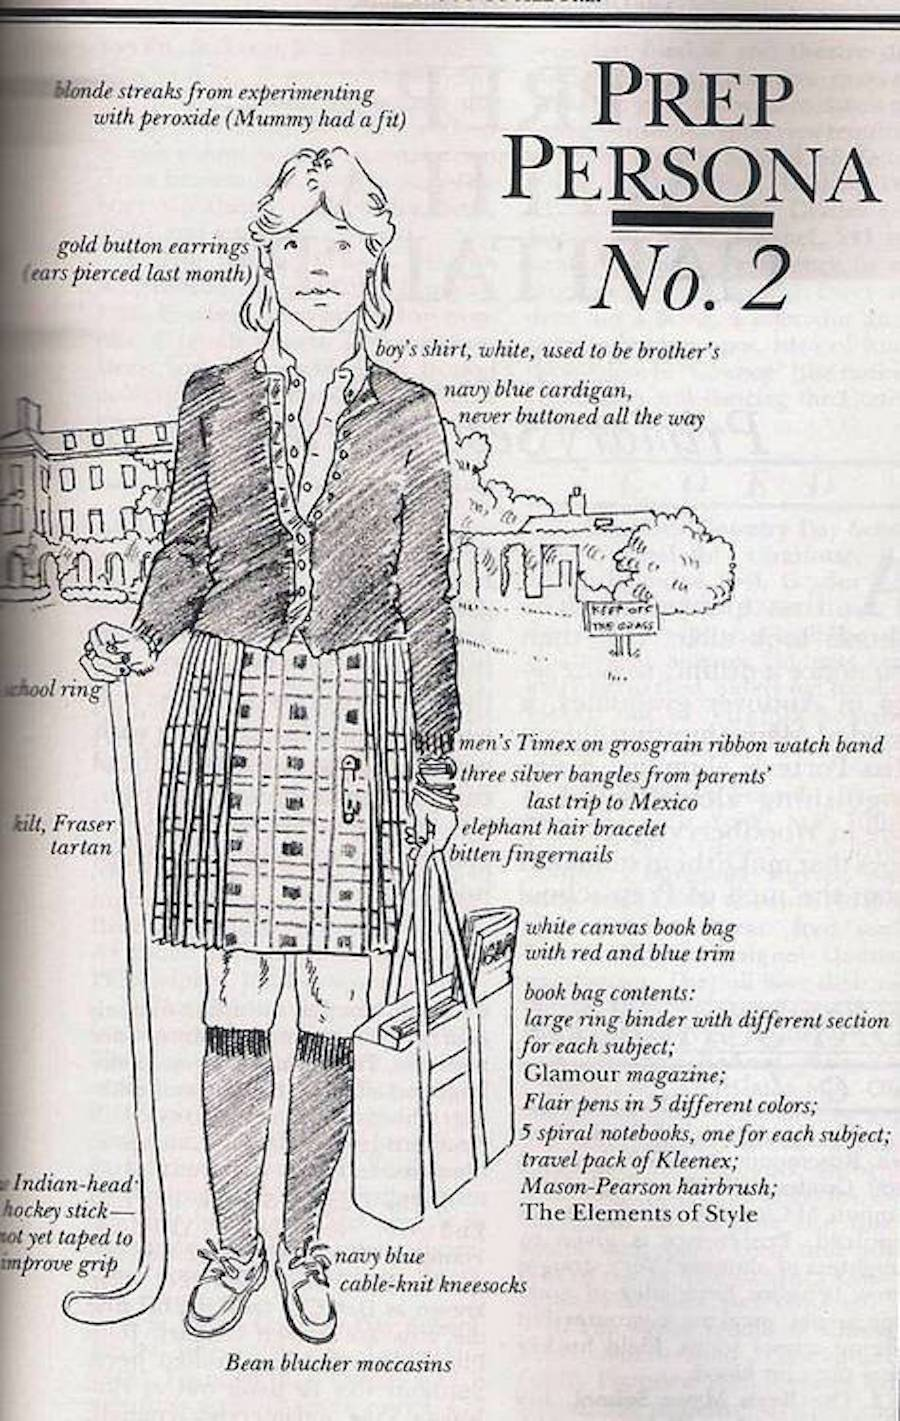 preppy handbook persona 2 (boarding school girl)